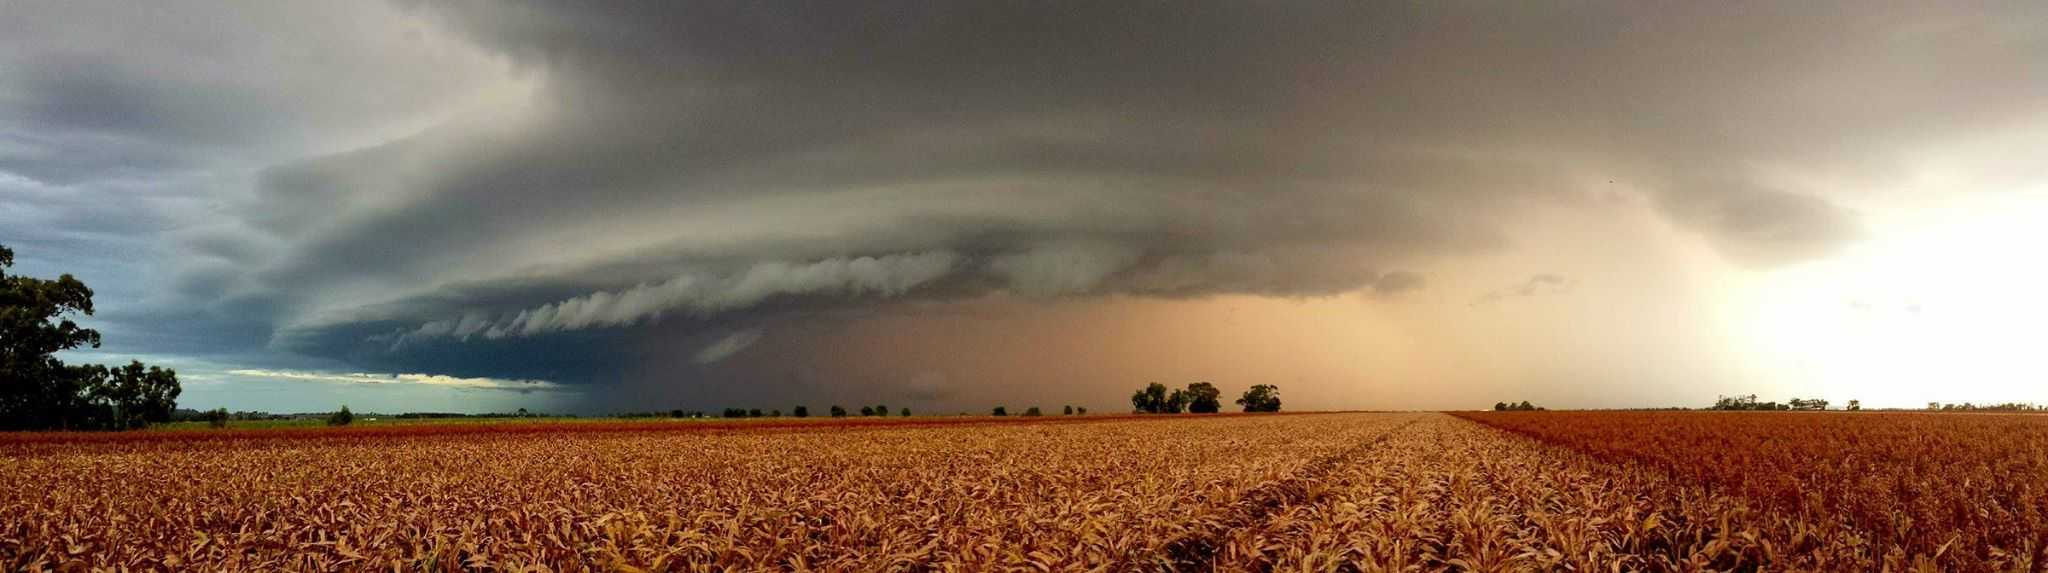 Here Is A Shot Of Today's Storms Over South East Queensland, Australia. Beautiful Formation